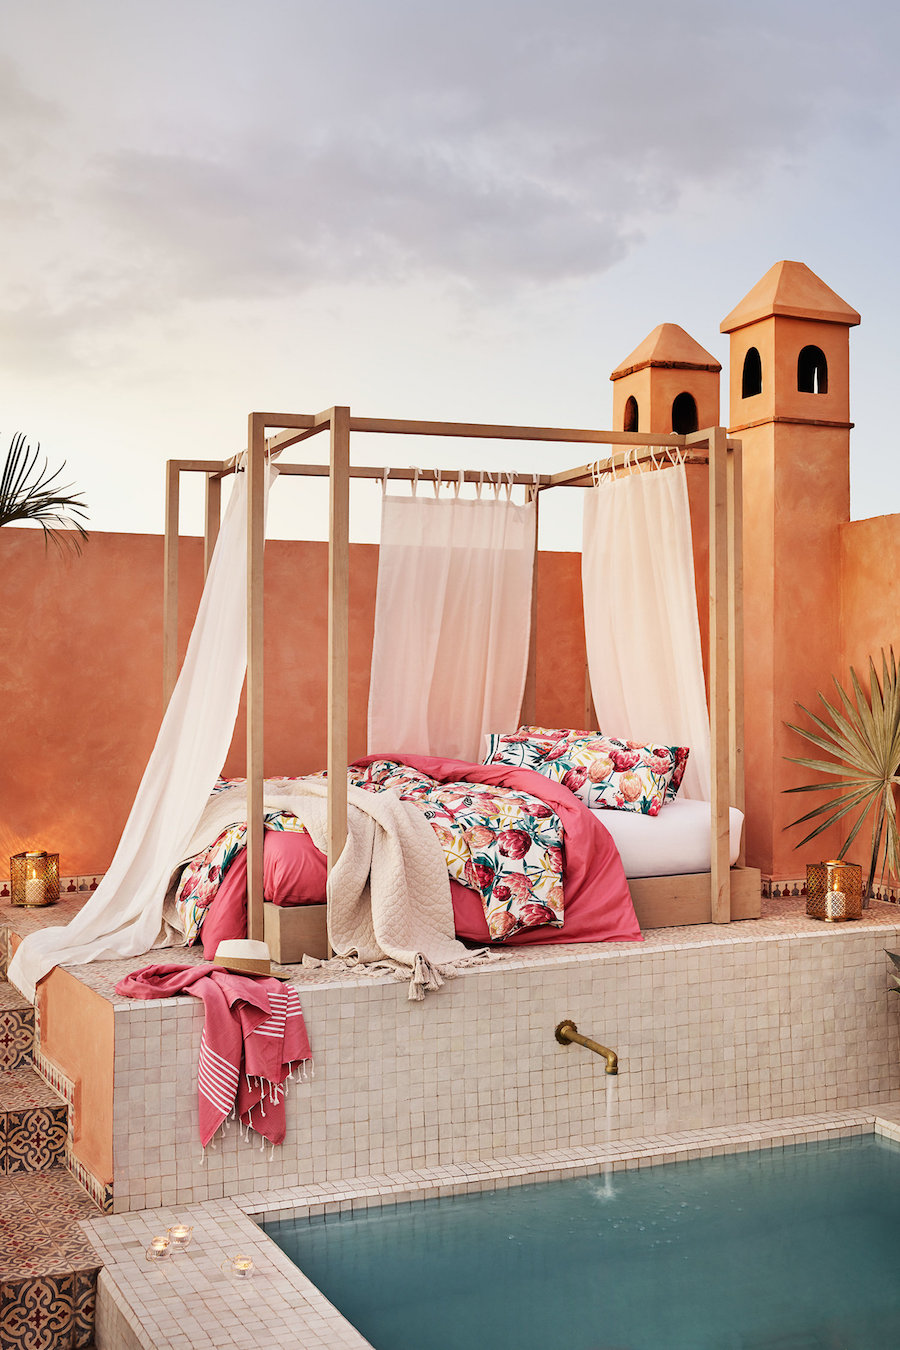 H&M Home Releases Moroccan Inspired Summer Collection